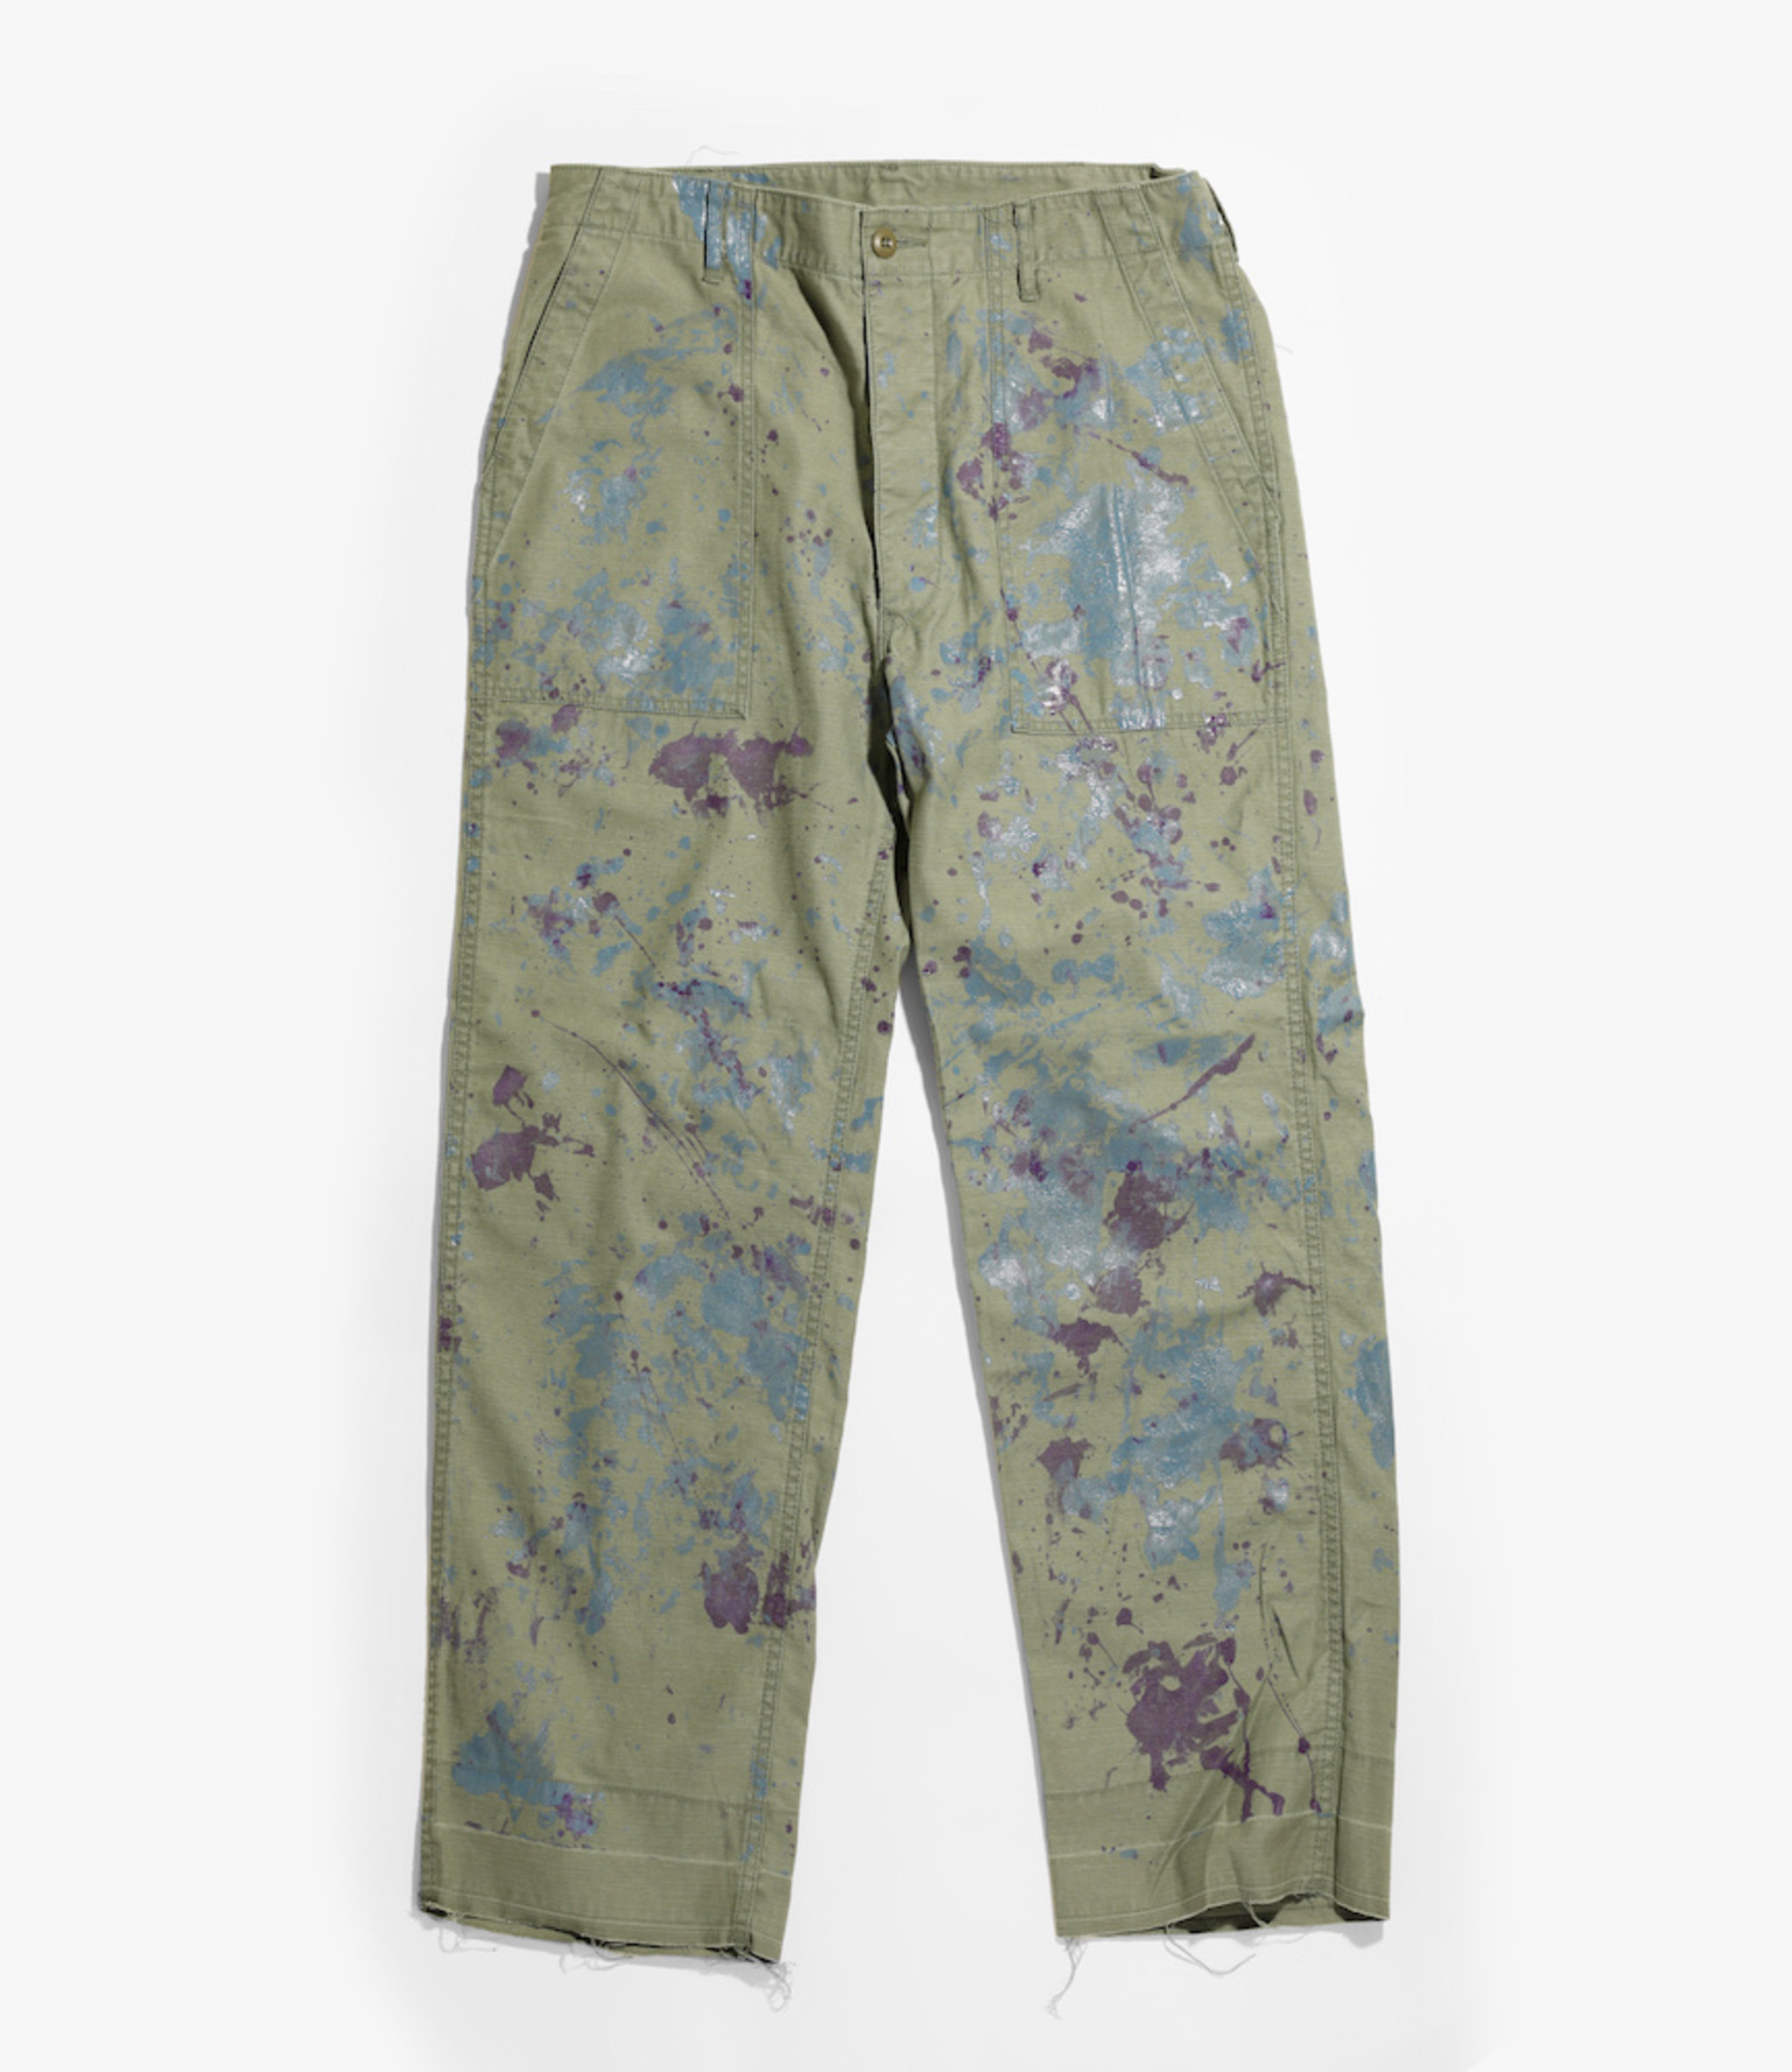 Needles Fatigue Pant - Back Sateen / Paint - Olive